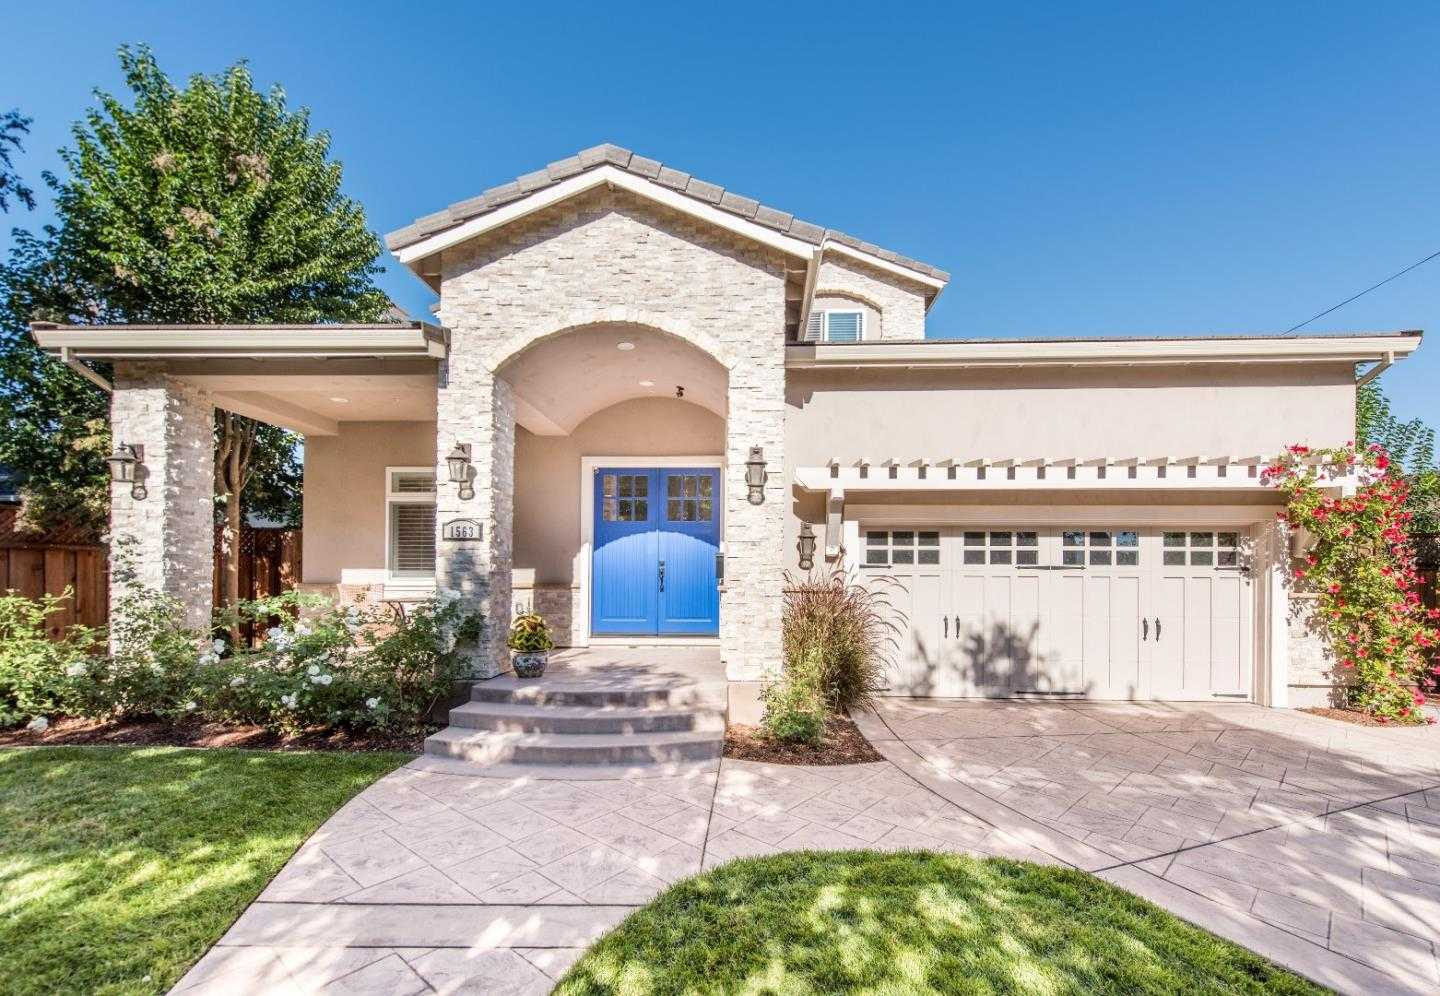 $2,249,000 - 4Br/4Ba -  for Sale in San Jose